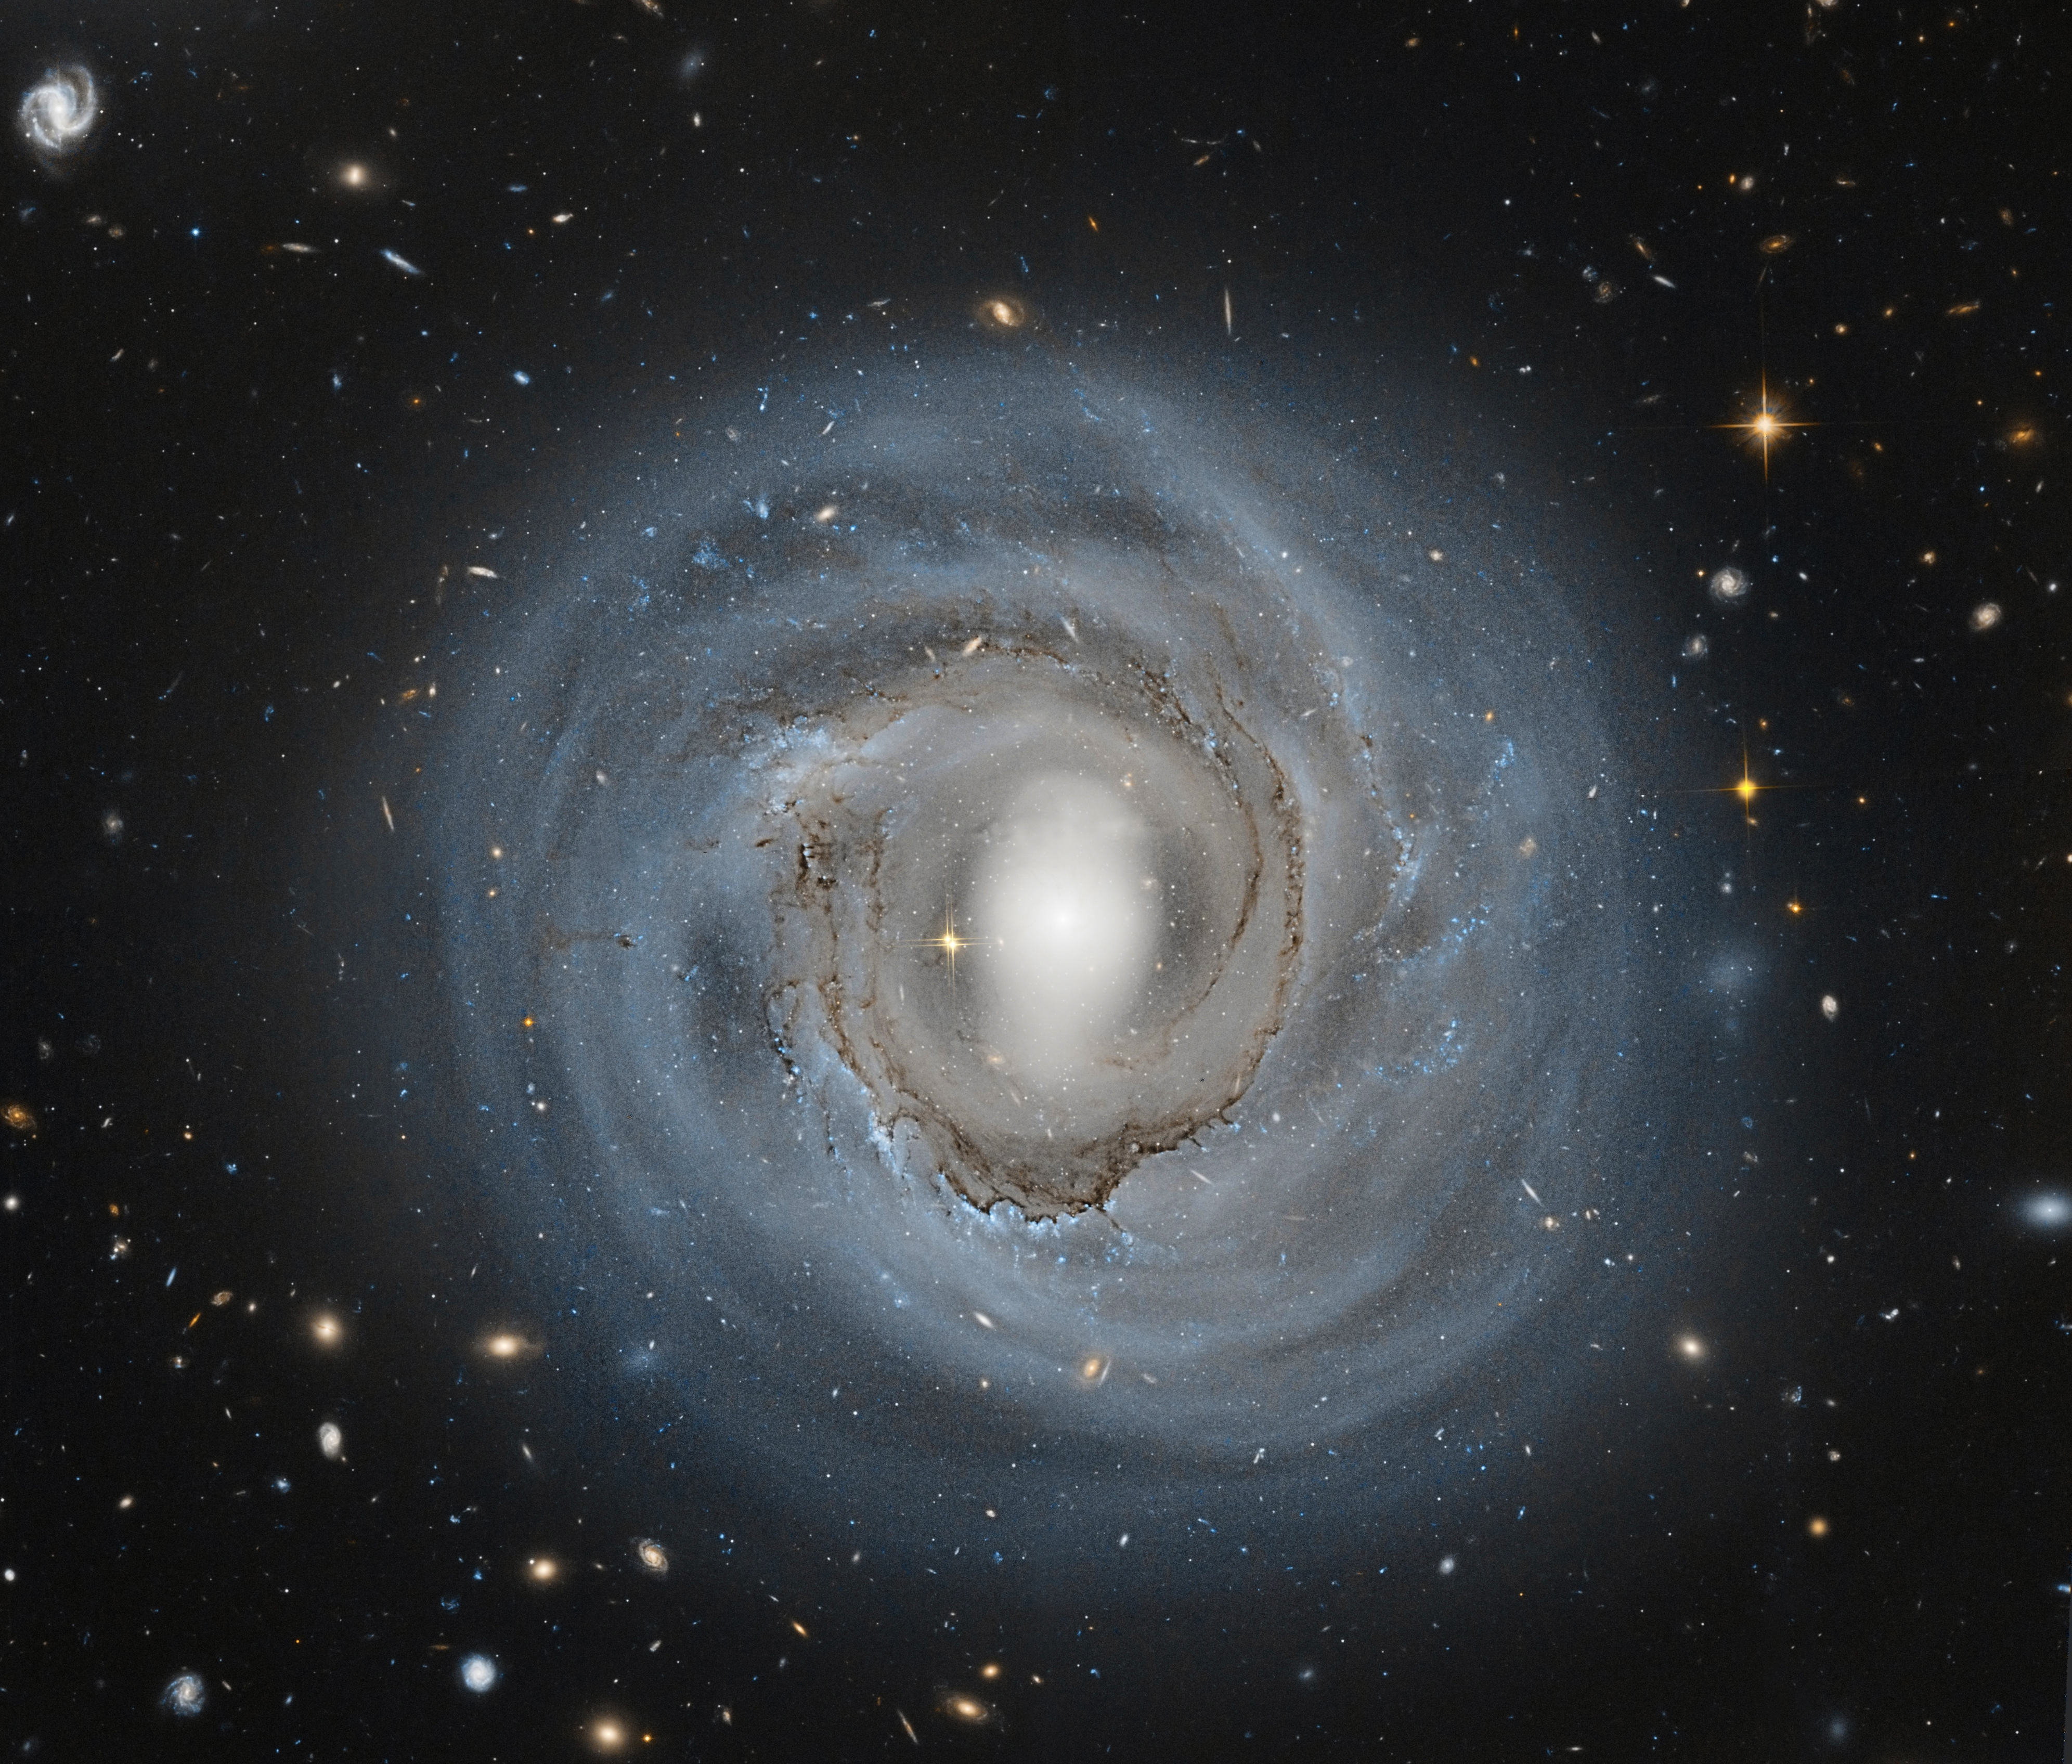 Hubble Sees Anemic Spiral NGC 4921 | NASA